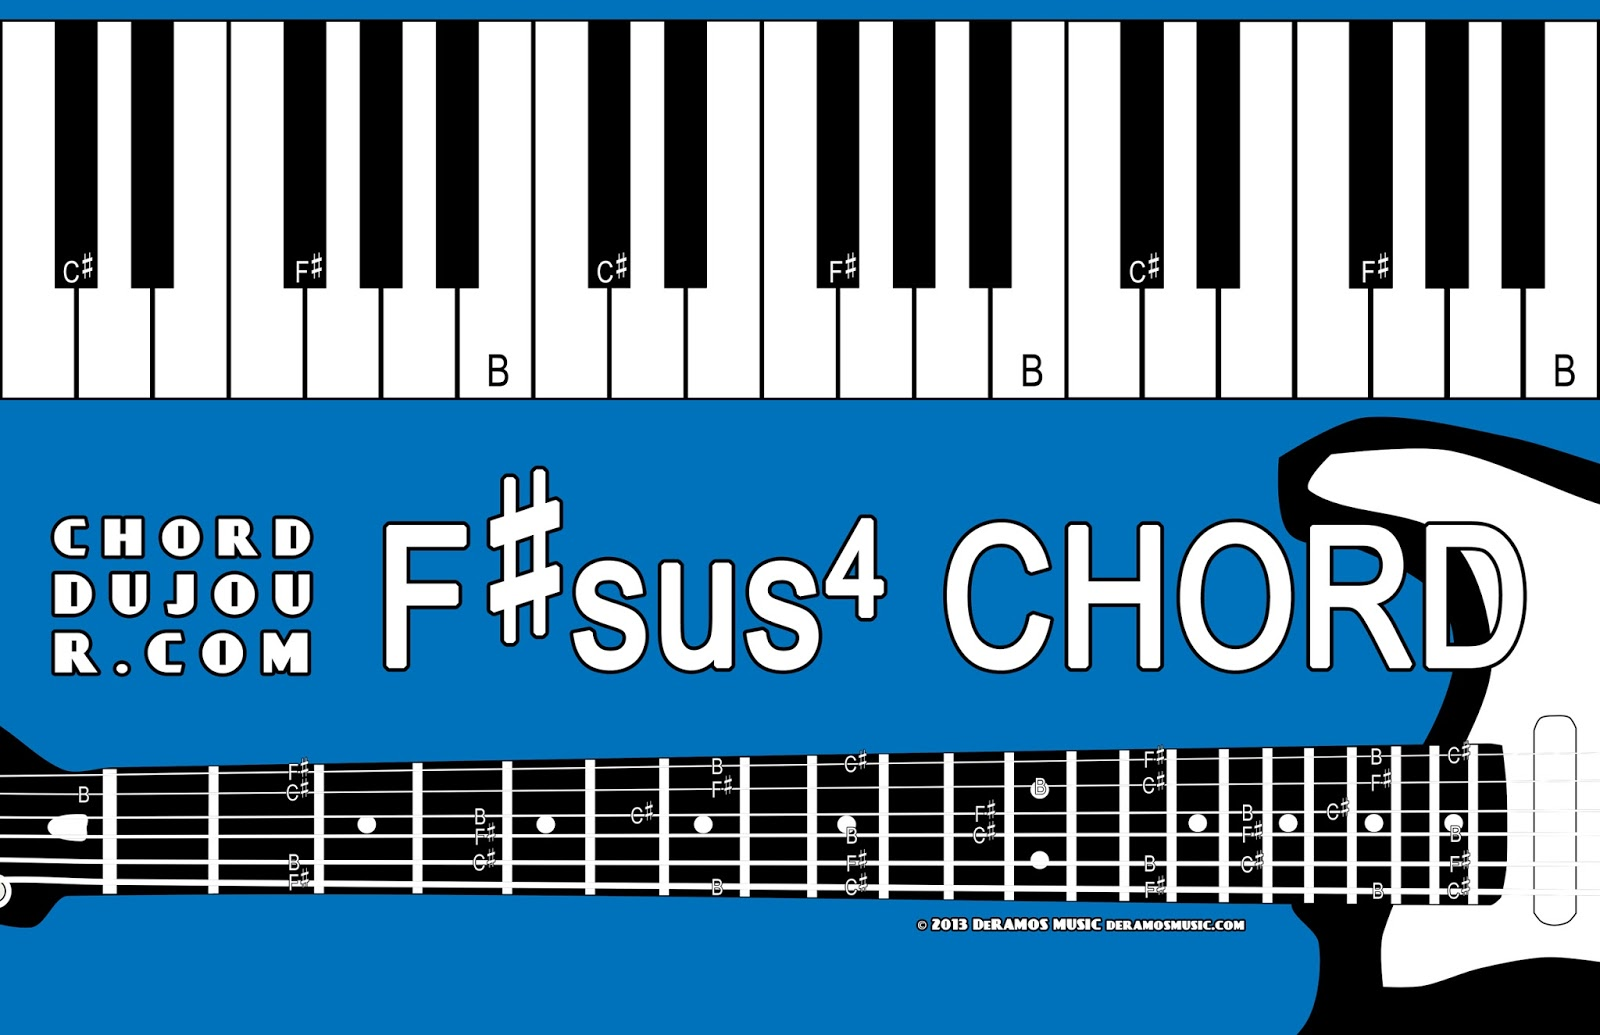 Chord du jour dictionary fsus4 chord dictionary fsus4 chord hexwebz Image collections